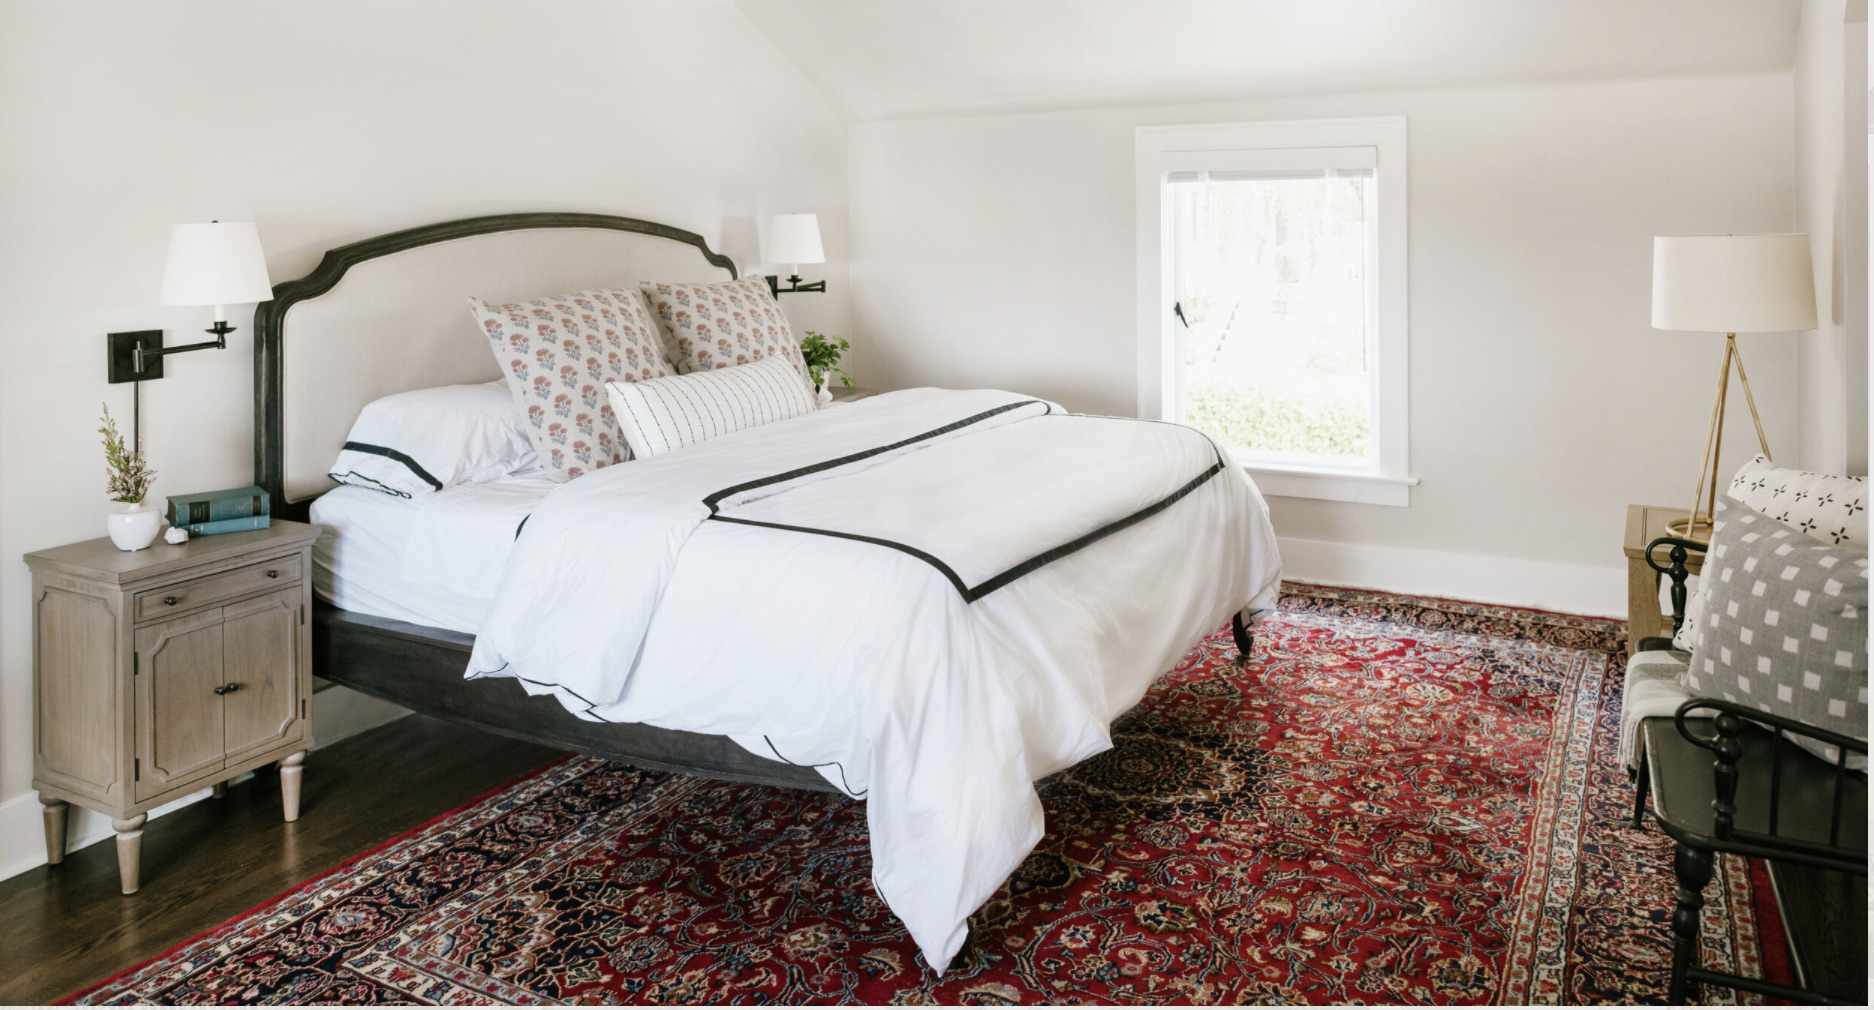 bed room with giant red paisley rug, white color scheme throughout